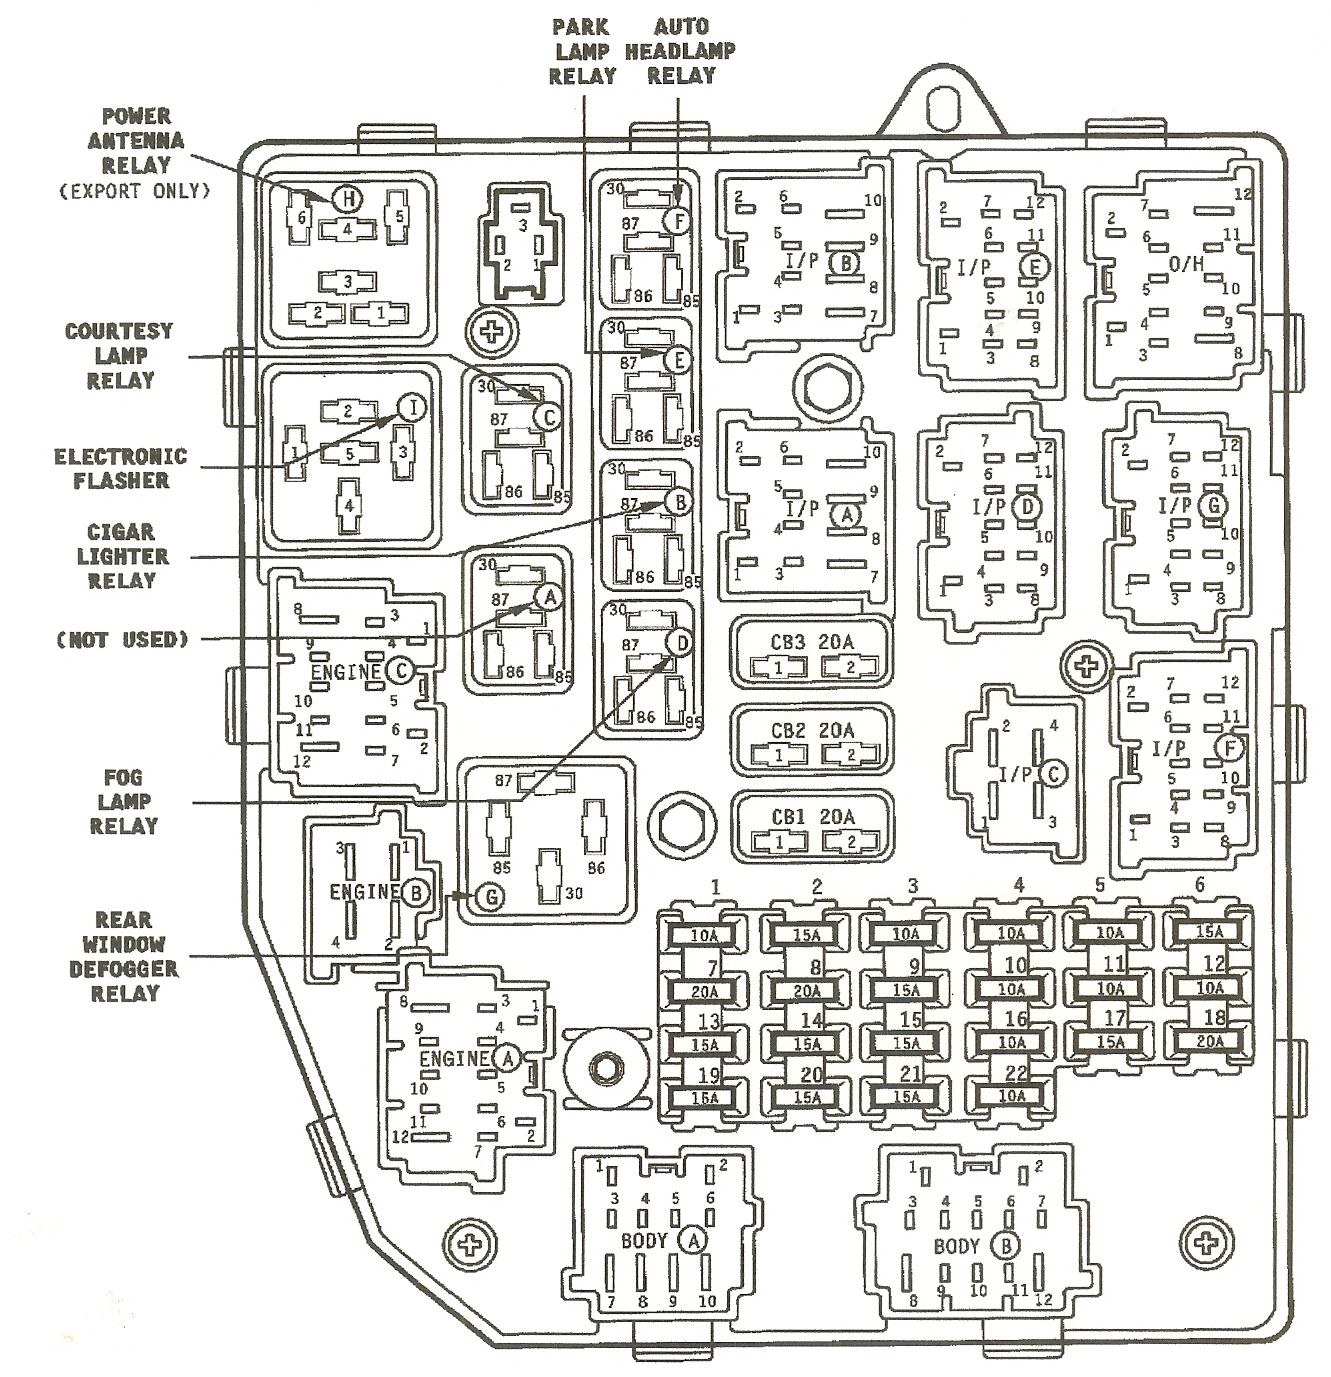 small resolution of jeep zj fuse box diagram simple wiring schema 1996 jeep cherokee fuse diagram jeep zj fuse diagram